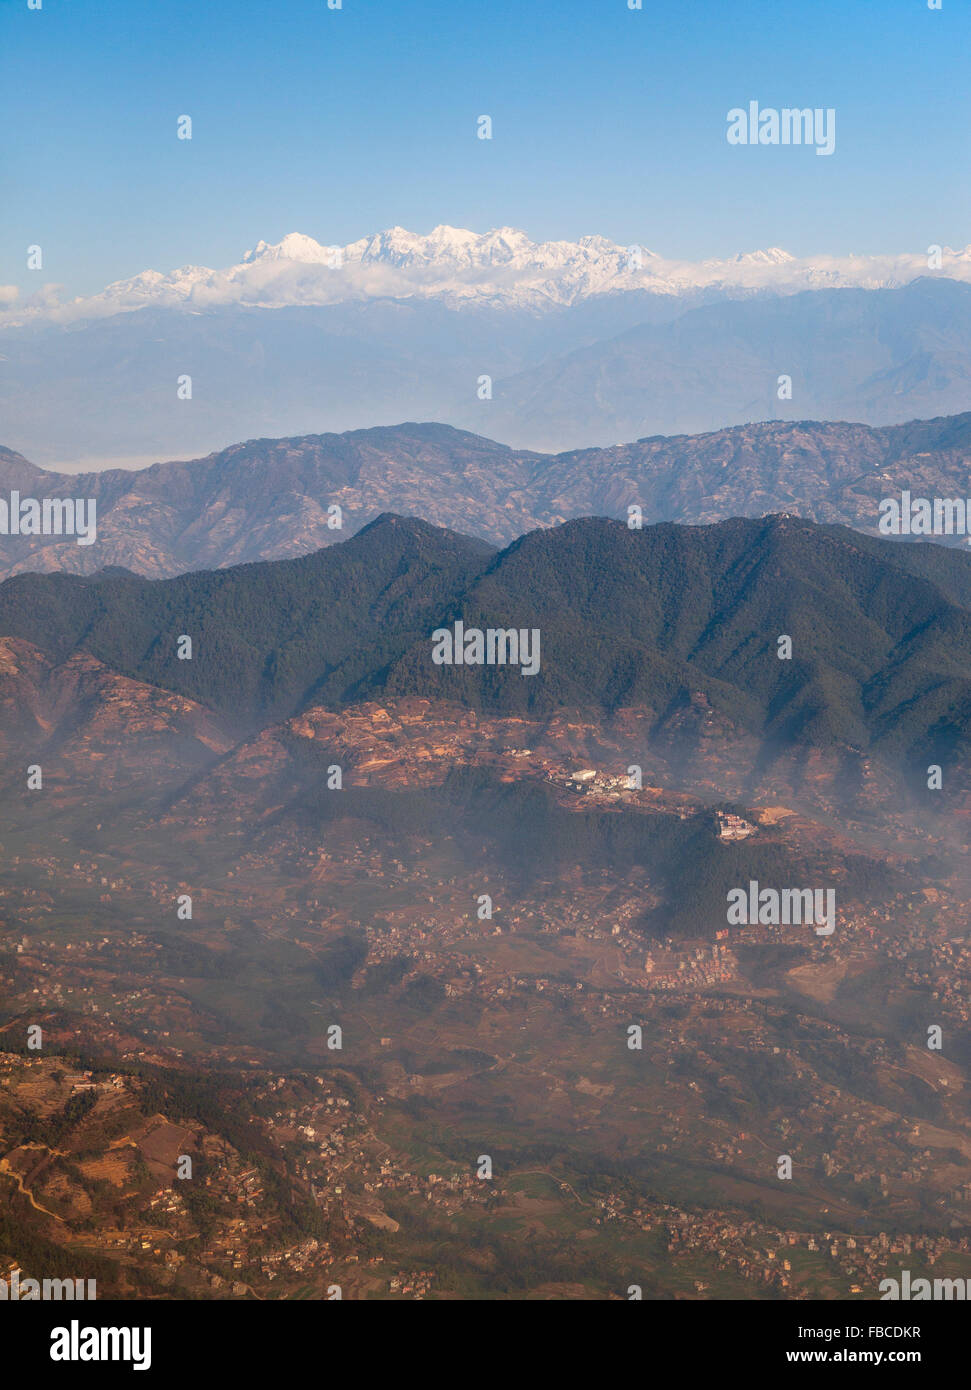 Aerial view of Kathmandu, foothills and himalayan mountain backdrop - Stock Image